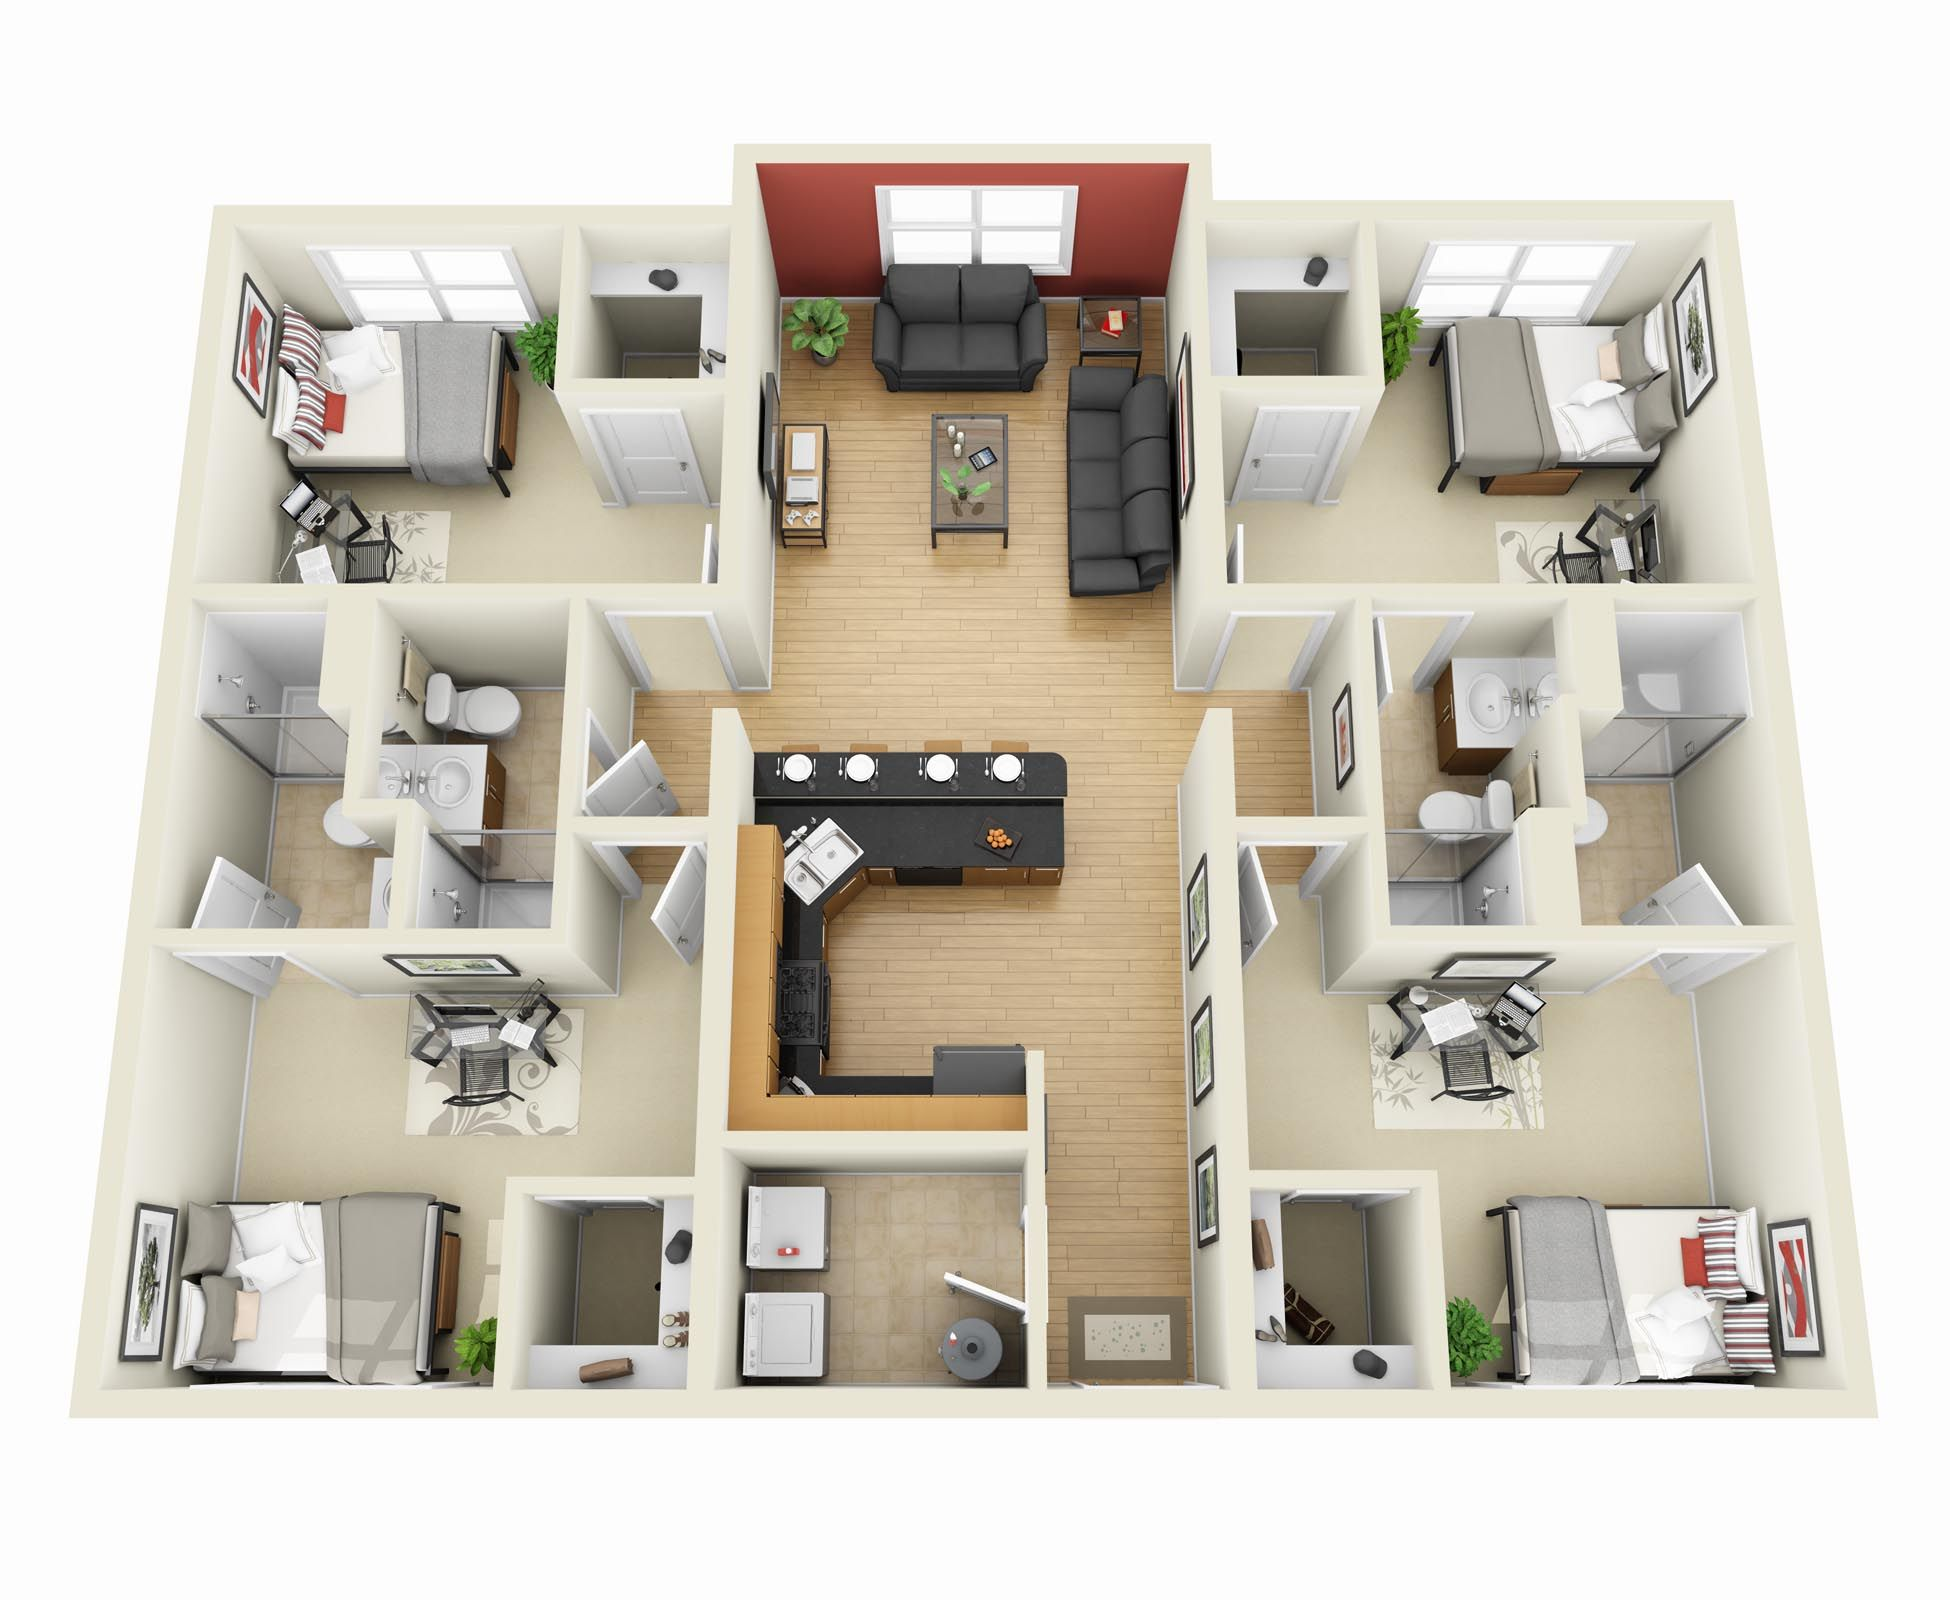 4 Bedroom Apartment House Plans Apartment Floor Plans Bedroom House Plans 3d House Plans